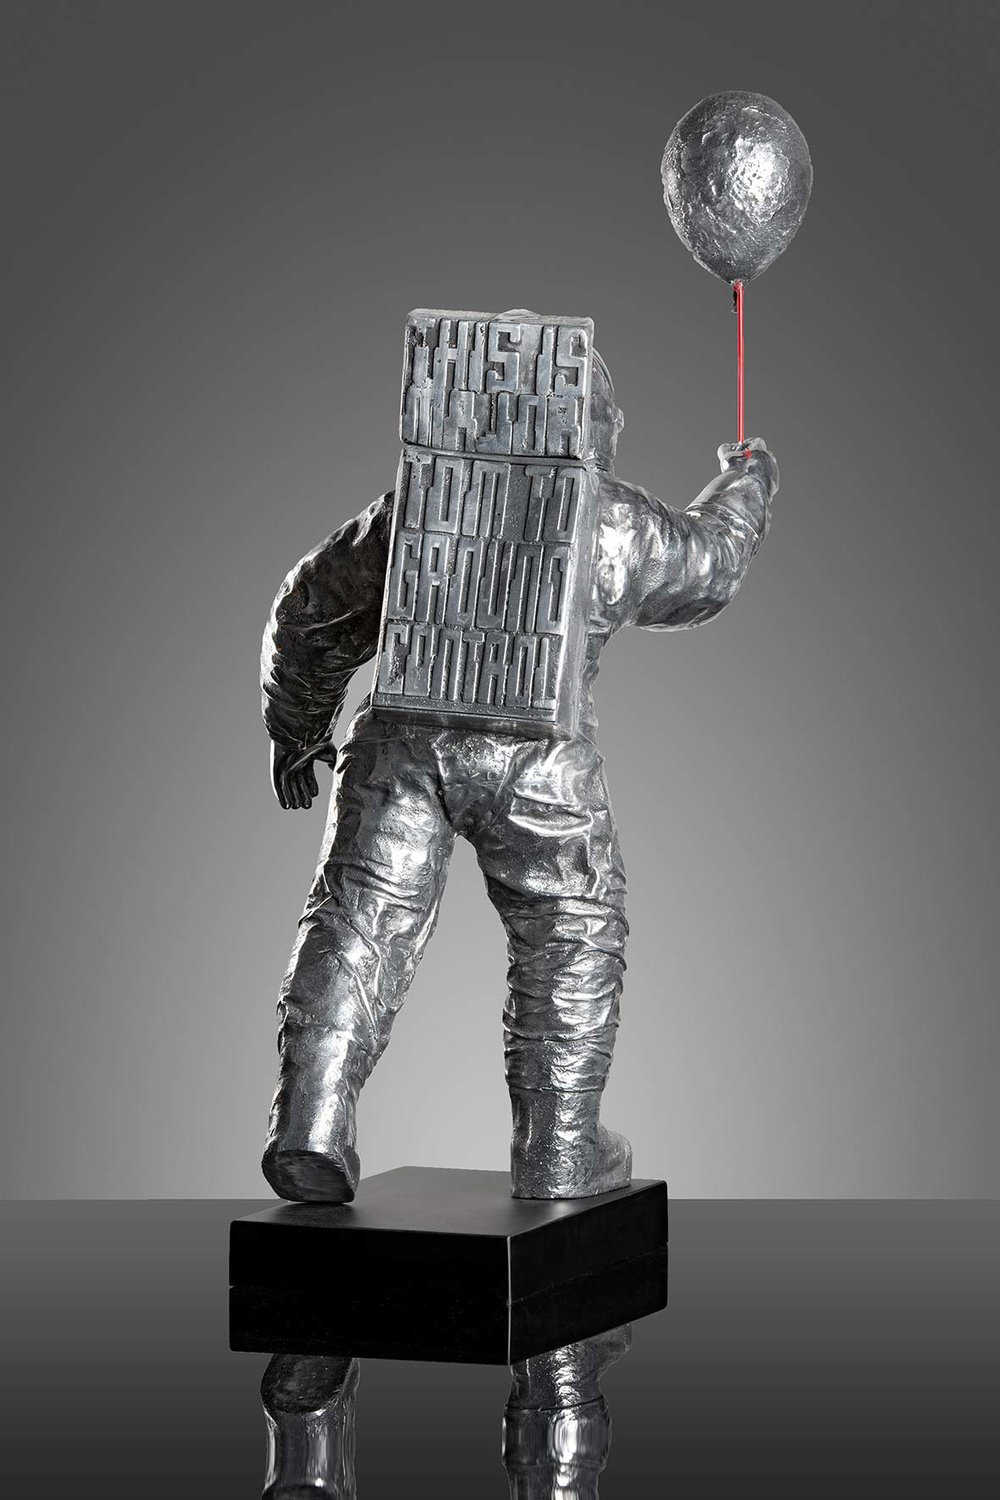 Major Tom  (2015) | aluminium | 80 x 25 x 37 cm |oeuvre originale | © Jean-René broyer